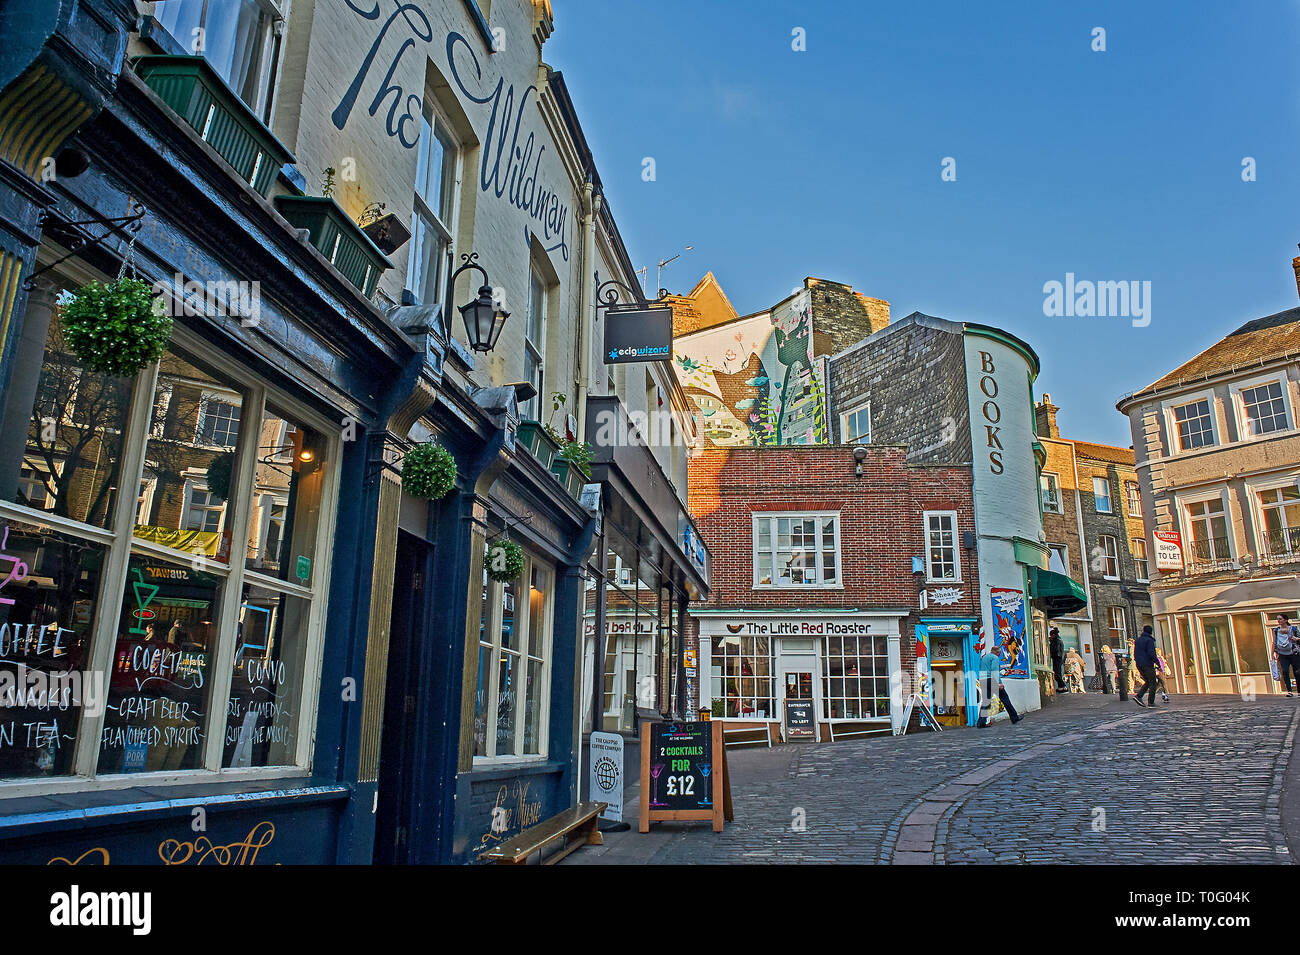 City centre street scene in Norwich Stock Photo